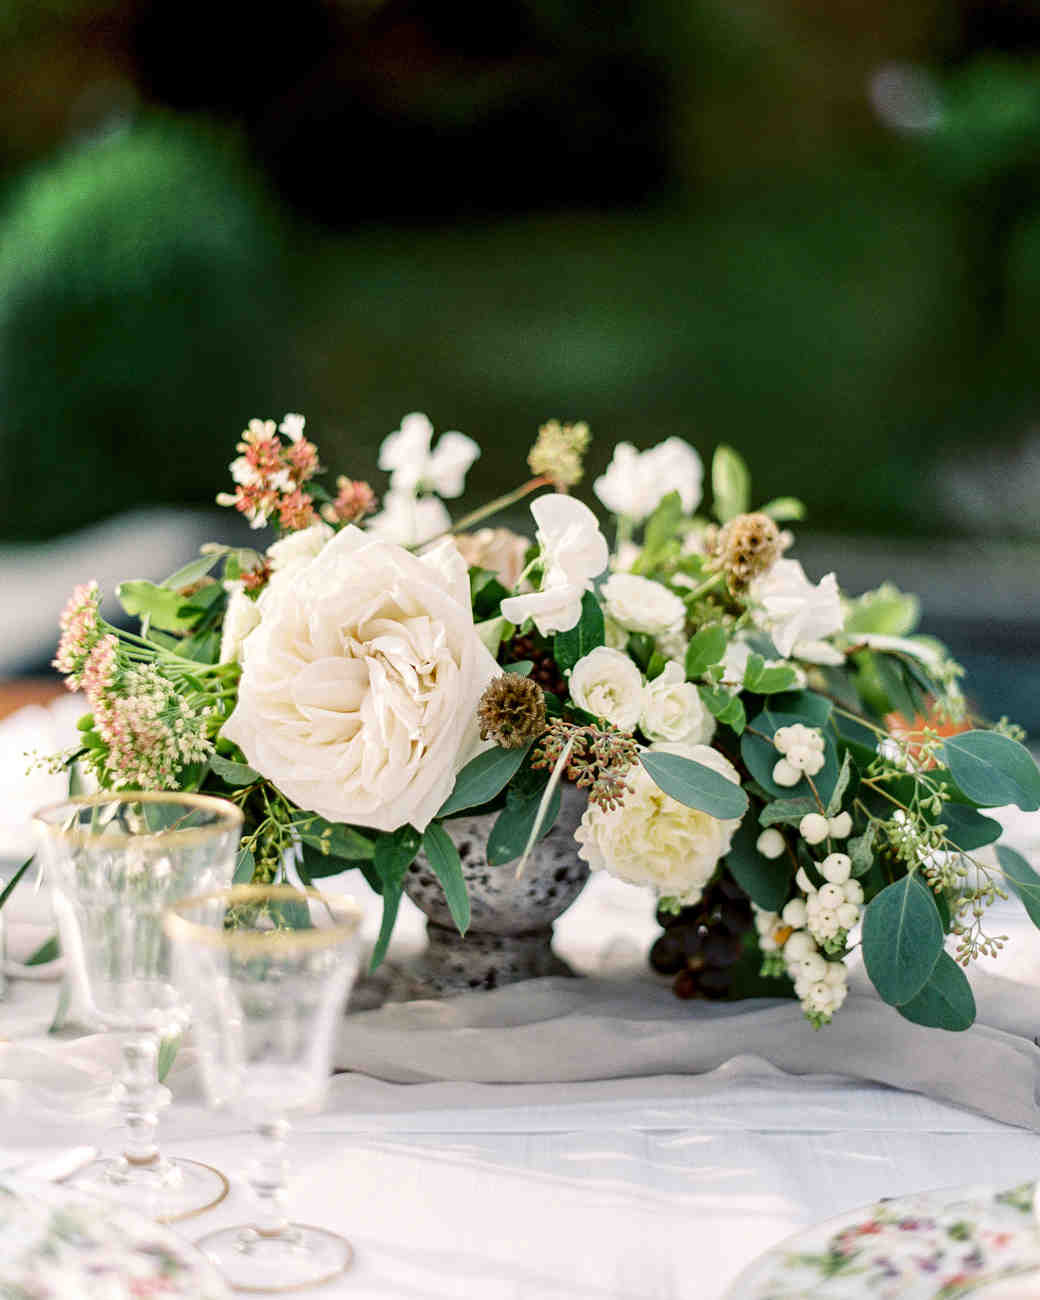 Flower Centerpiece : Floral wedding centerpieces martha stewart weddings